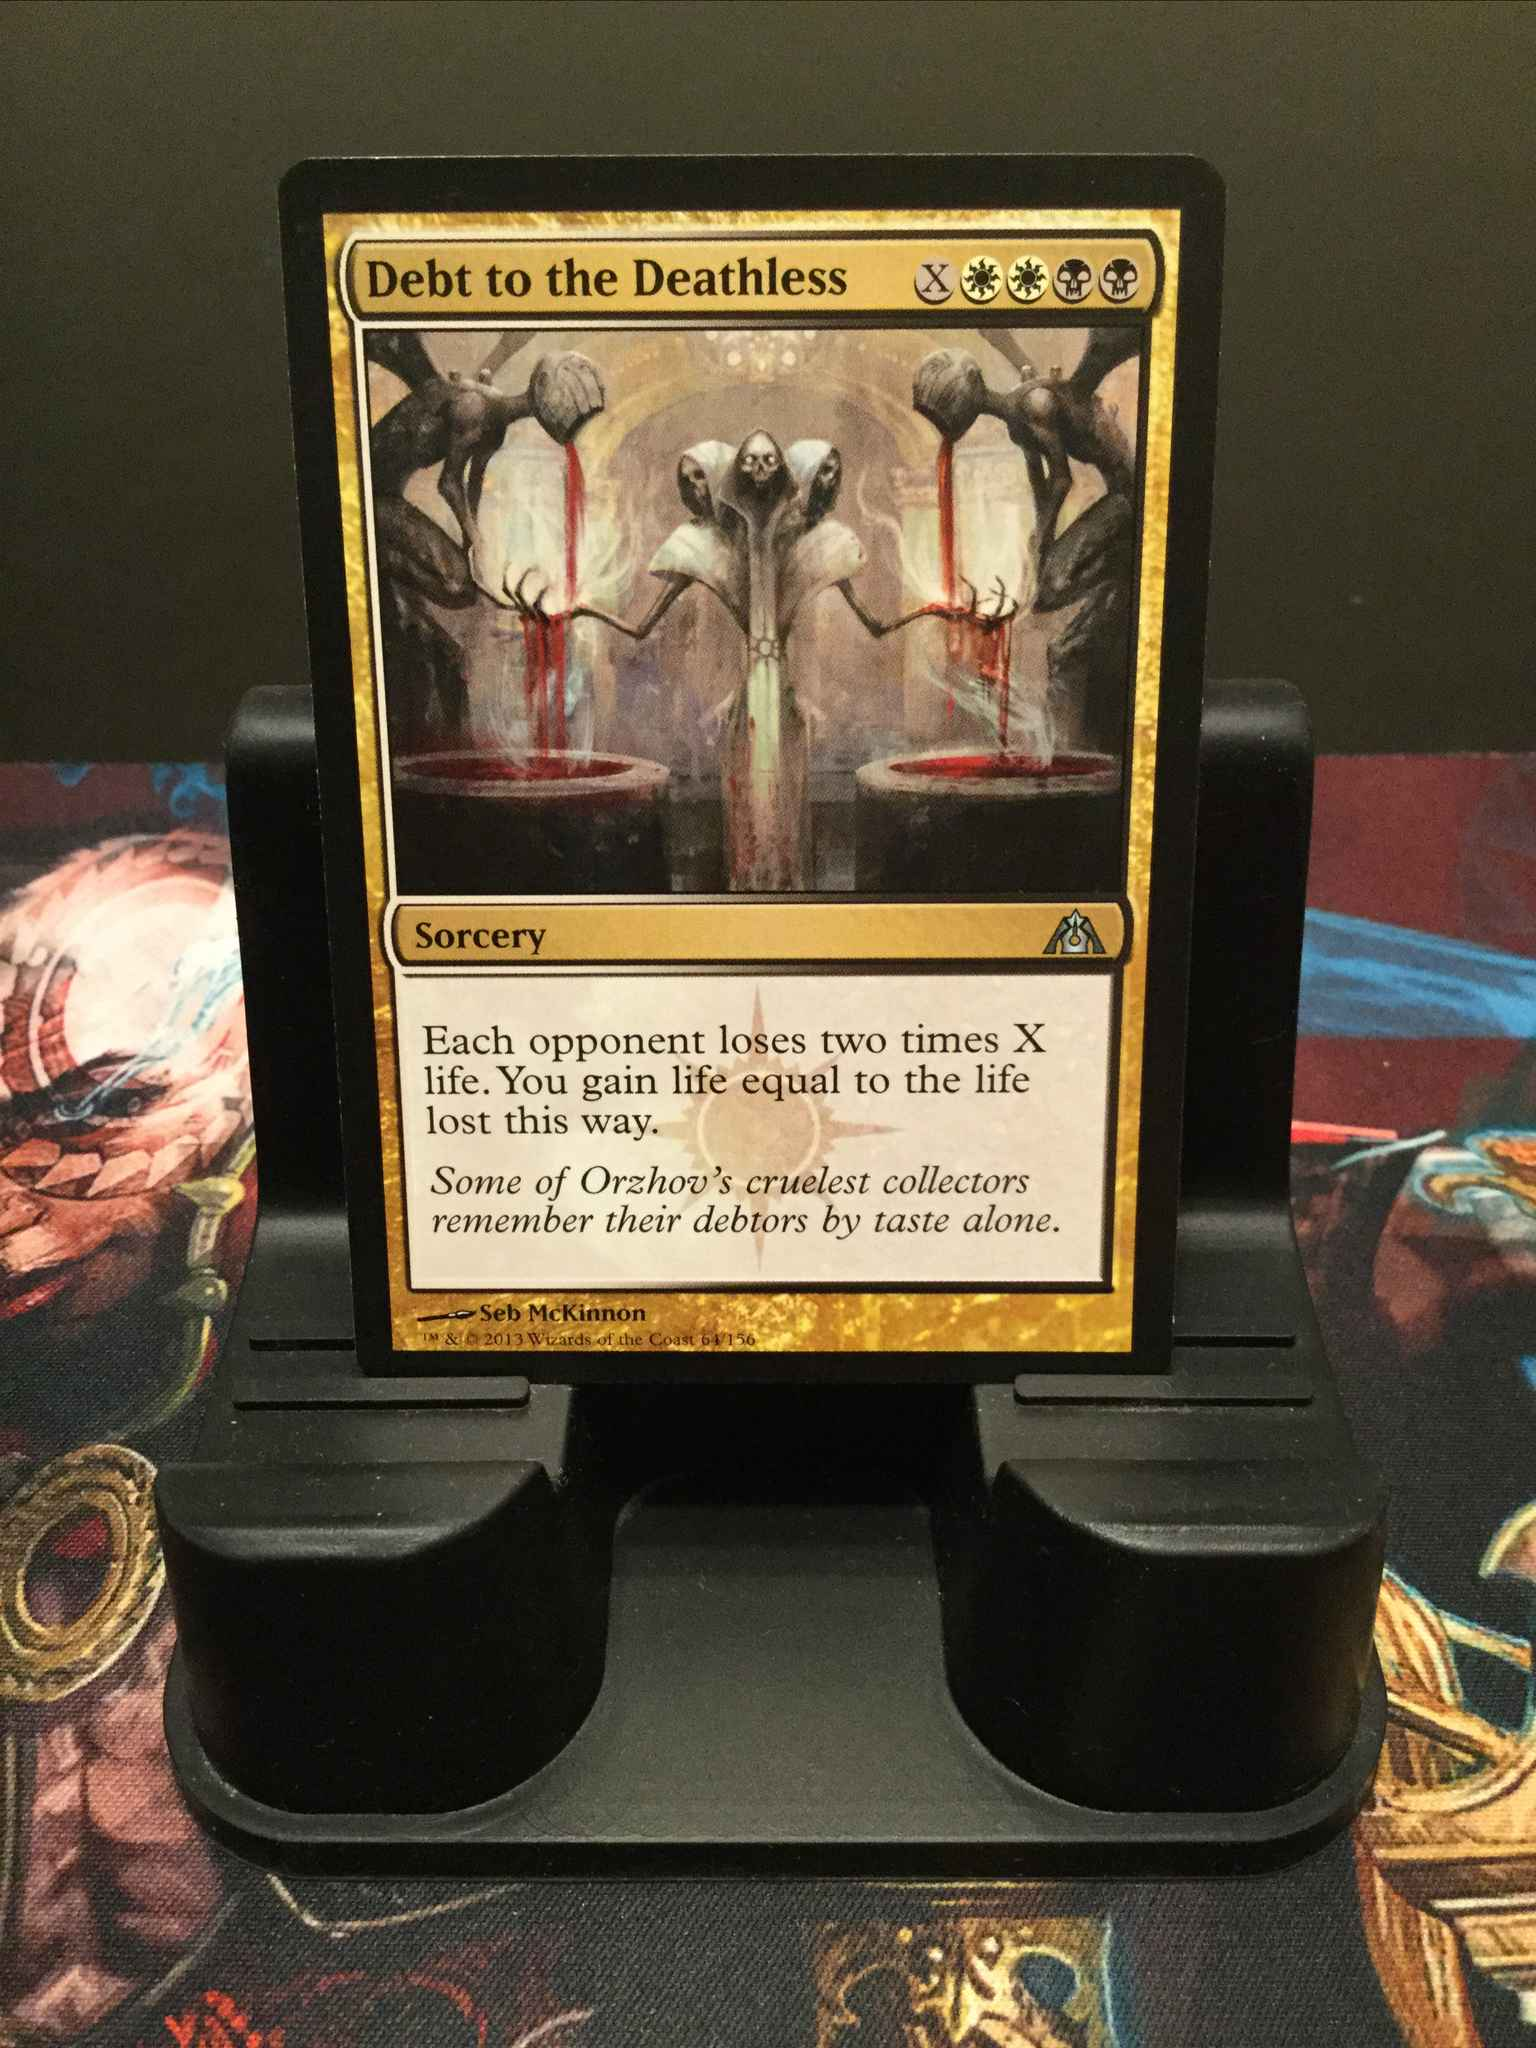 Dgm Eng 64 U Debt To The Deathless Lp All About Mtg Debt To The Deathless Dragon S Maze Magic The Gathering Online Gaming Store For Cards Miniatures Singles Packs Booster Boxes Jack russell debt collection agency, legal process servers. debt to the deathless